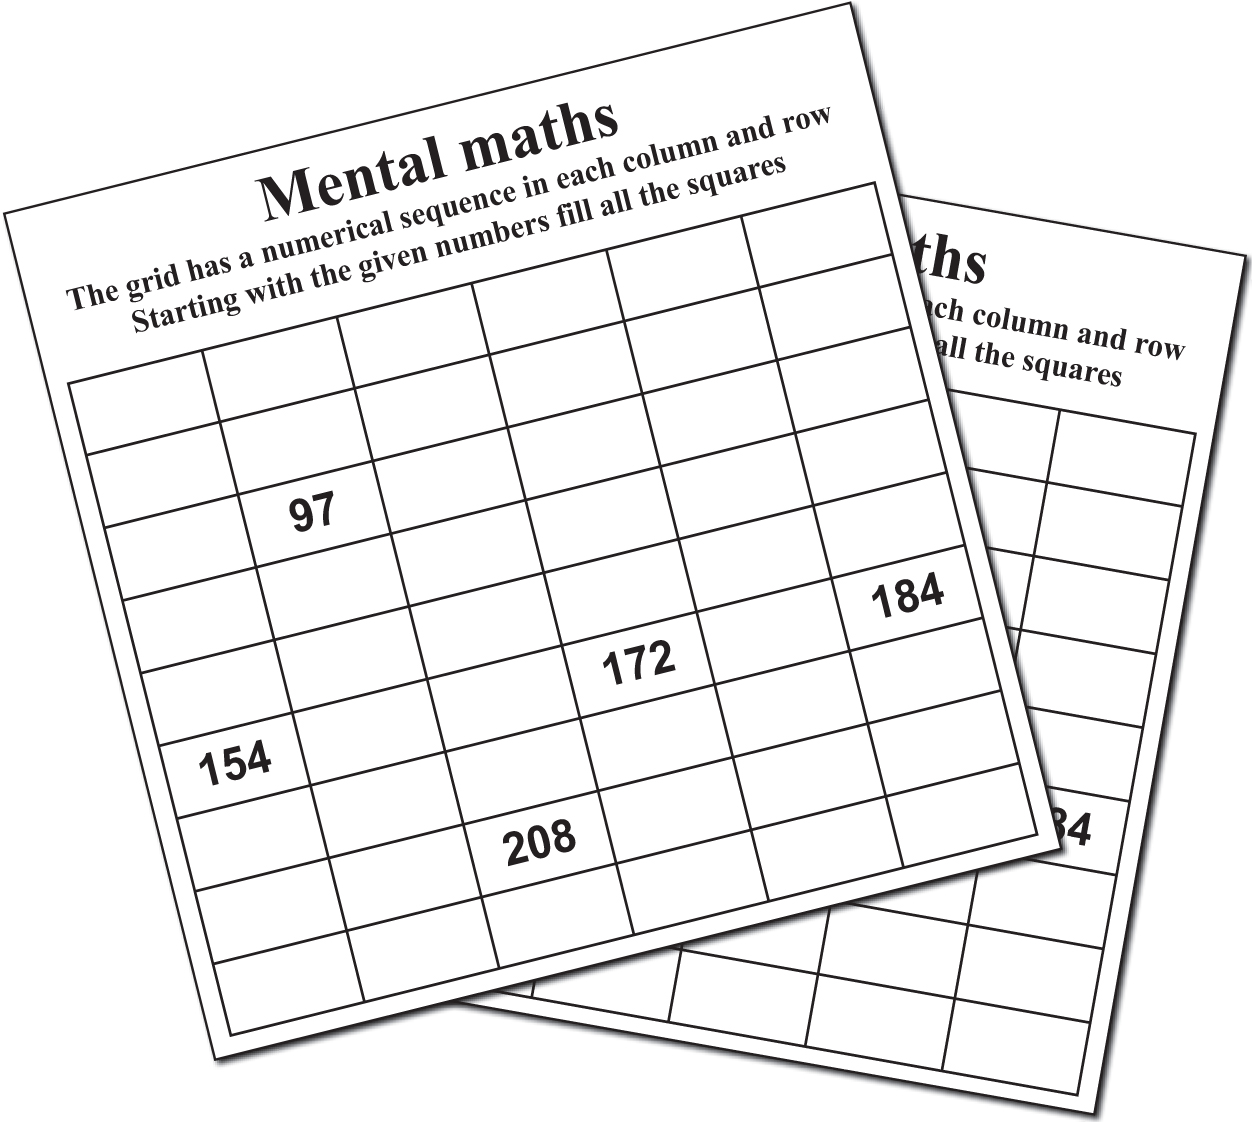 Image 1 for 20 MENTAL MATHS PUZZLE BOOKLET 02